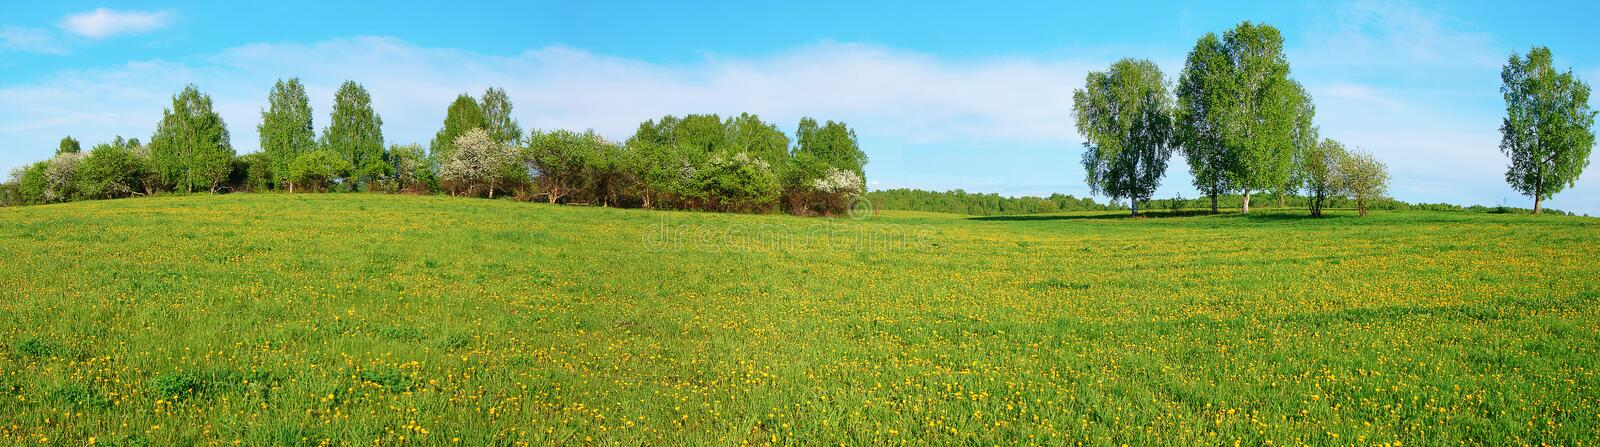 Beautiful summer landscape of a wide green field with yellow dandelions and trees on horizon. Beautiful summer landscape of a wide green field with yellow stock image